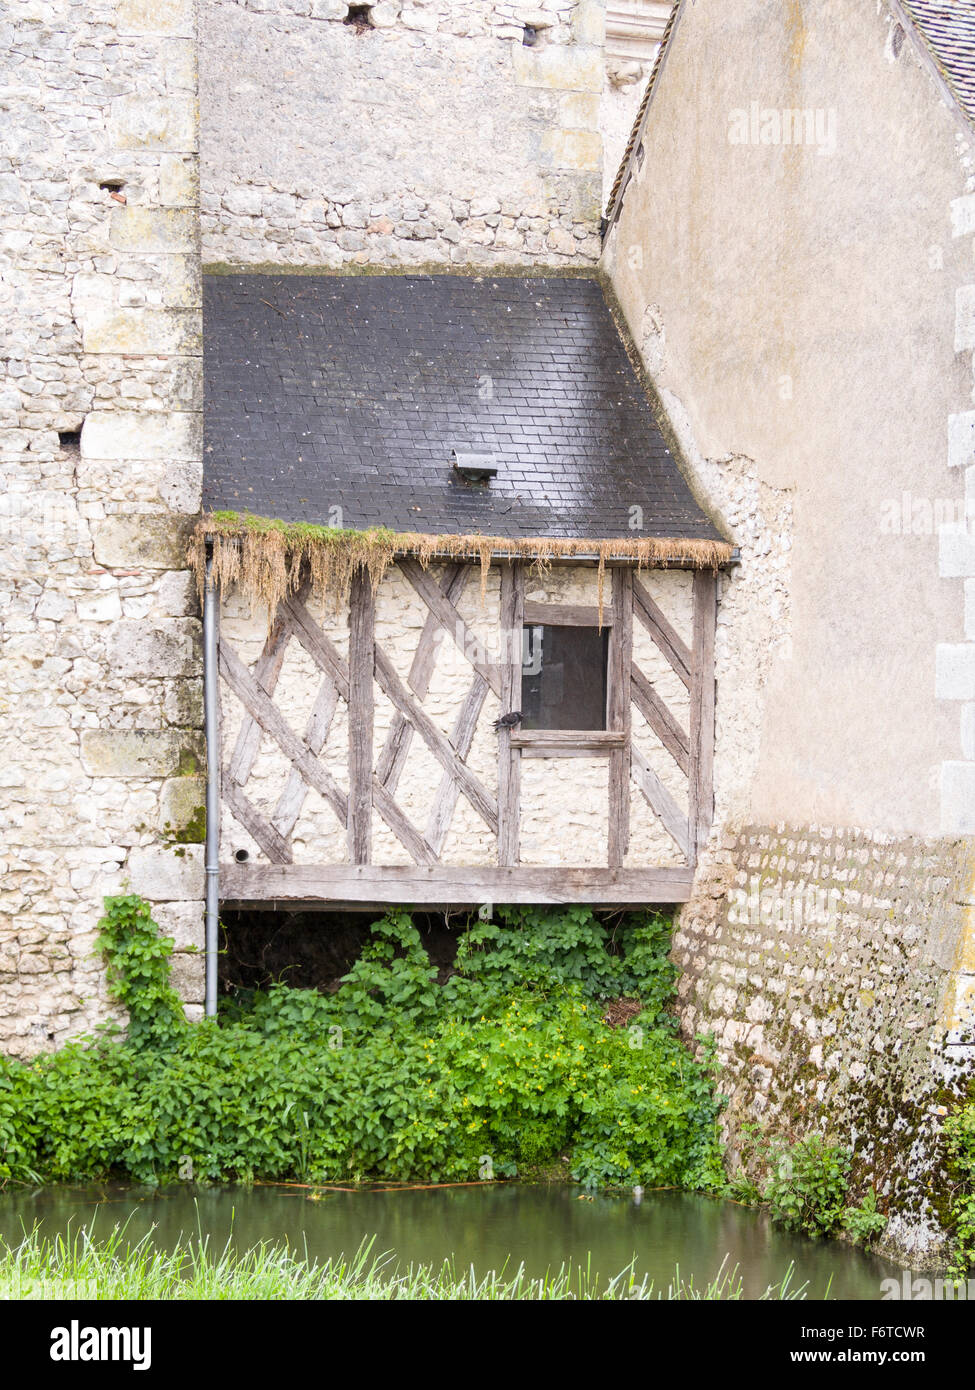 Addition: a small half-timbered room added to the Chateau. A small addition joins two parts of the ancient Chateau. - Stock Image